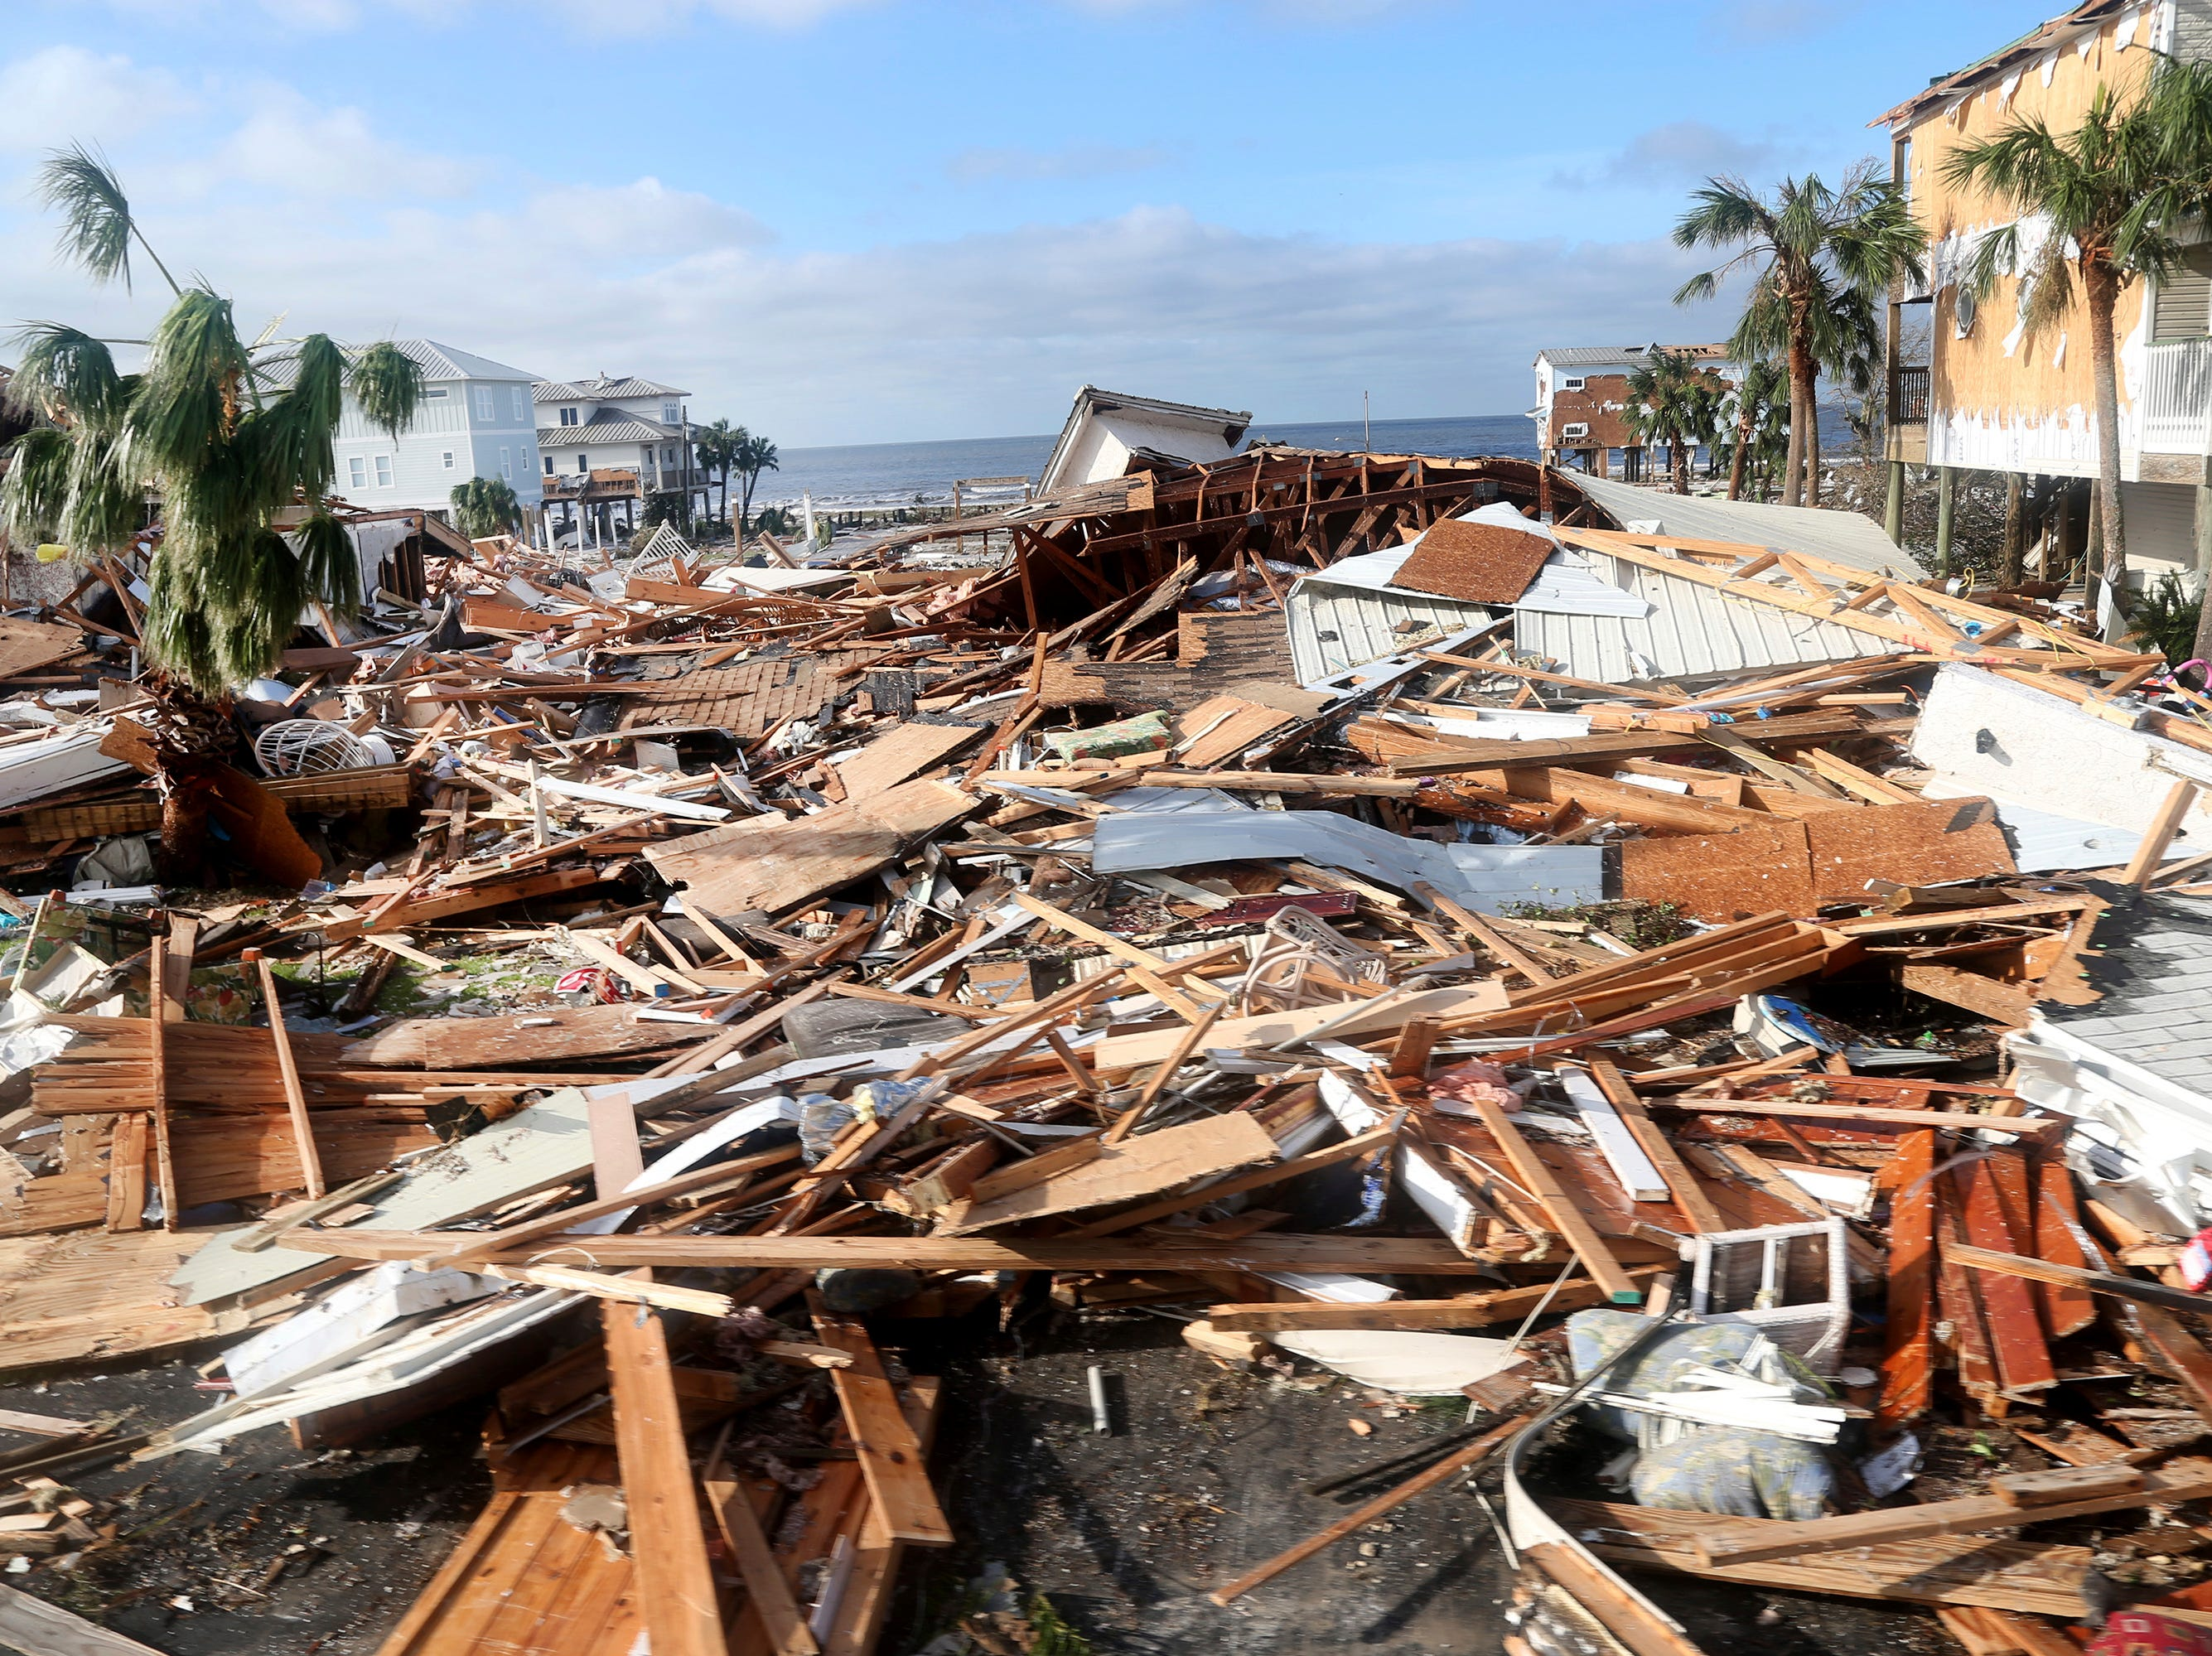 The coastal township of Mexico Beach, population 1200, lay devastated on Thursday, Oct. 11, 2018, after Hurricane Michael made landfall on Wednesday in the Florida Panhandle.(Douglas R. Clifford/Tampa Bay Times via AP)